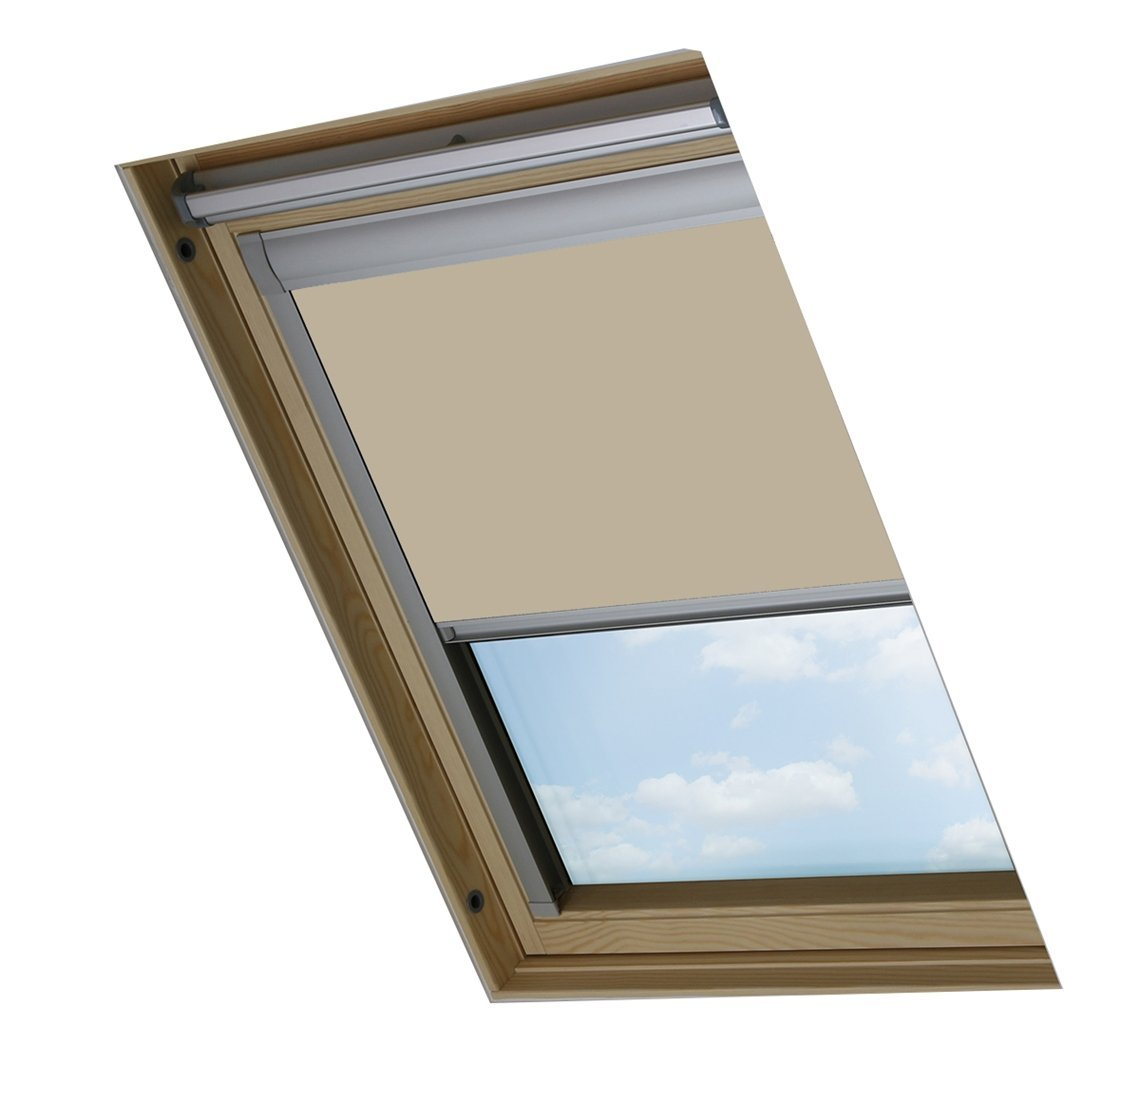 bloc dachfenster rollo s06 f r velux dachfenster blockout creme ebay. Black Bedroom Furniture Sets. Home Design Ideas